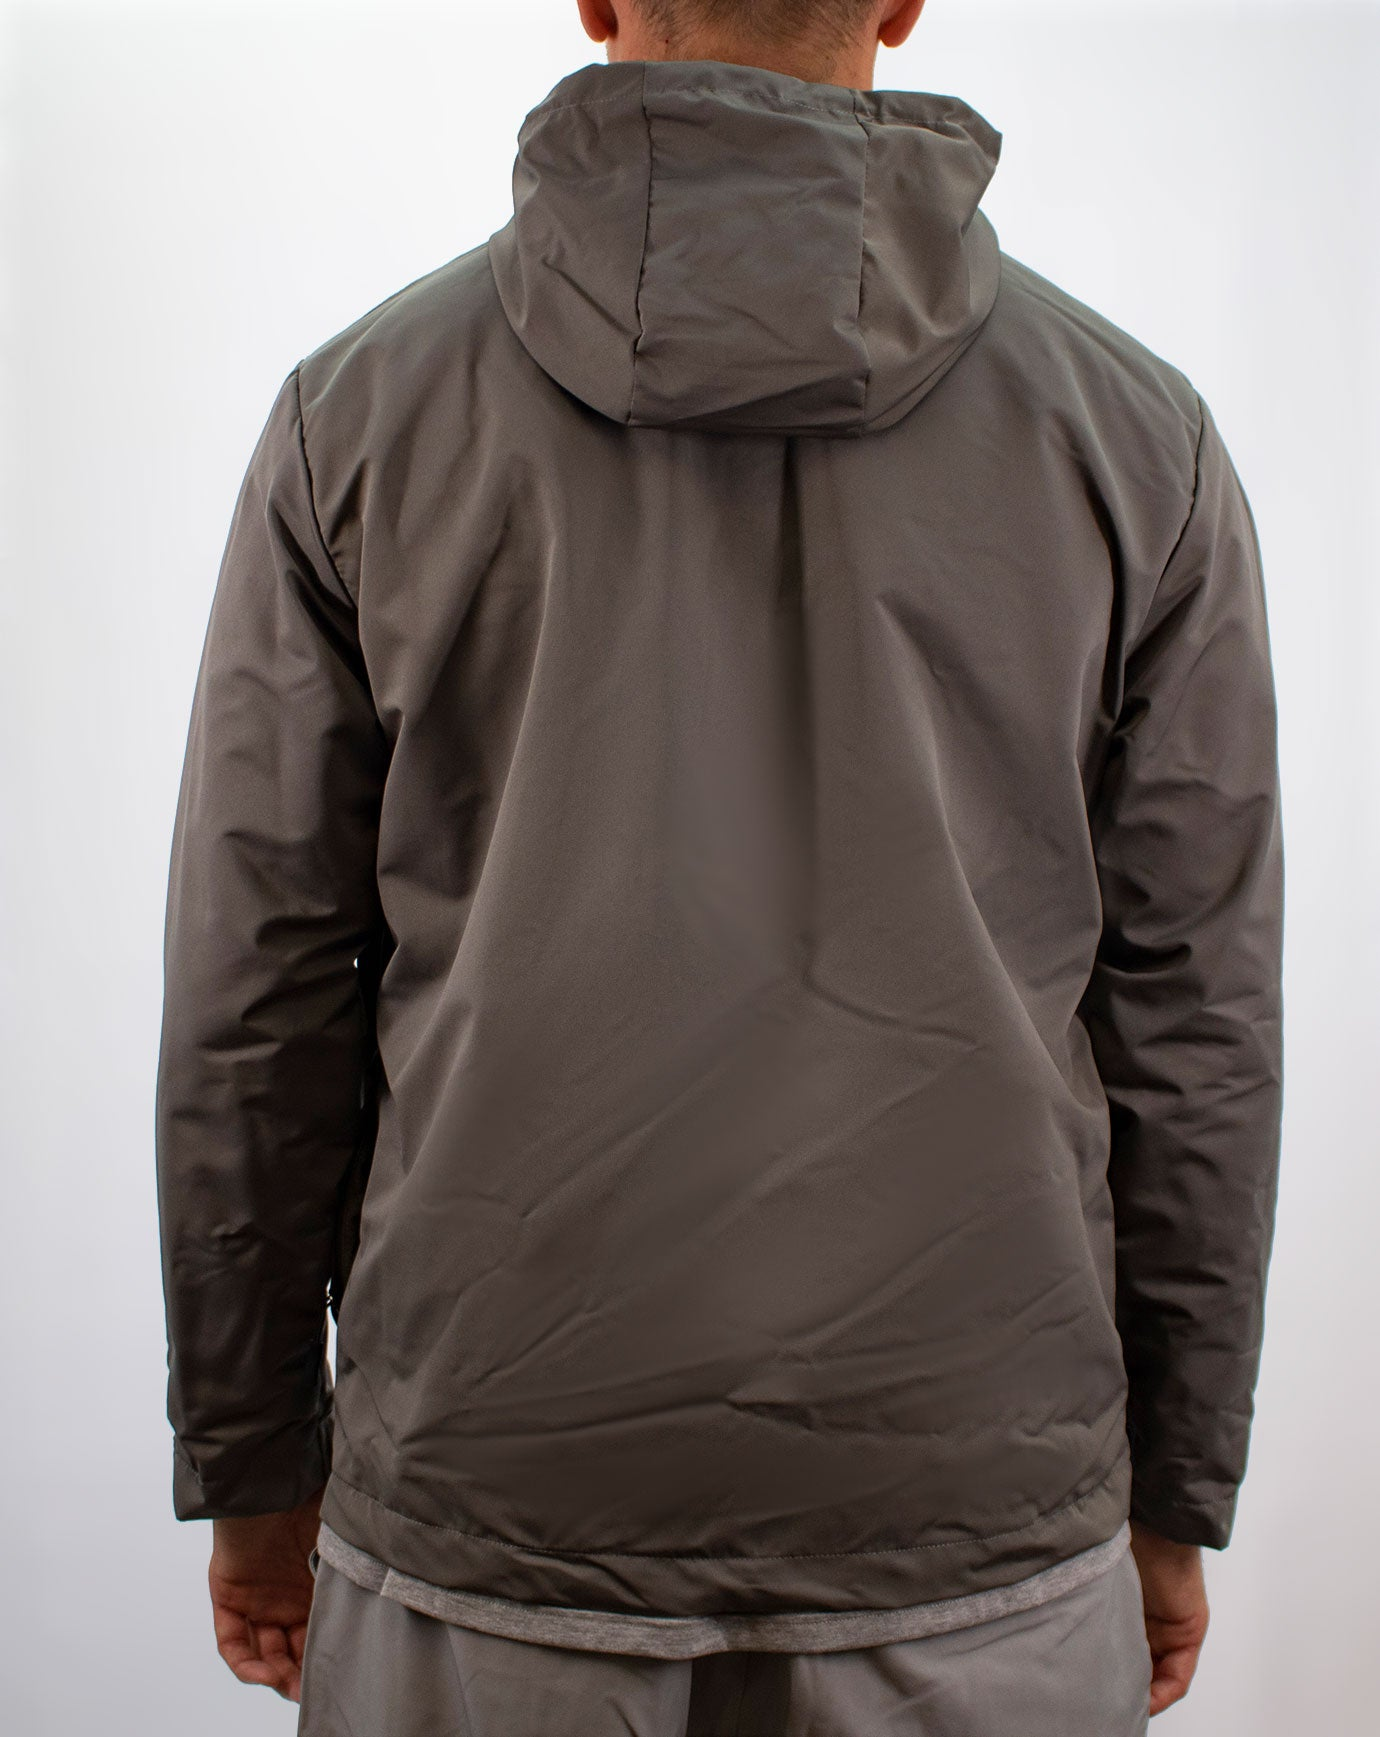 Raincheck Fishing Rain Jacket